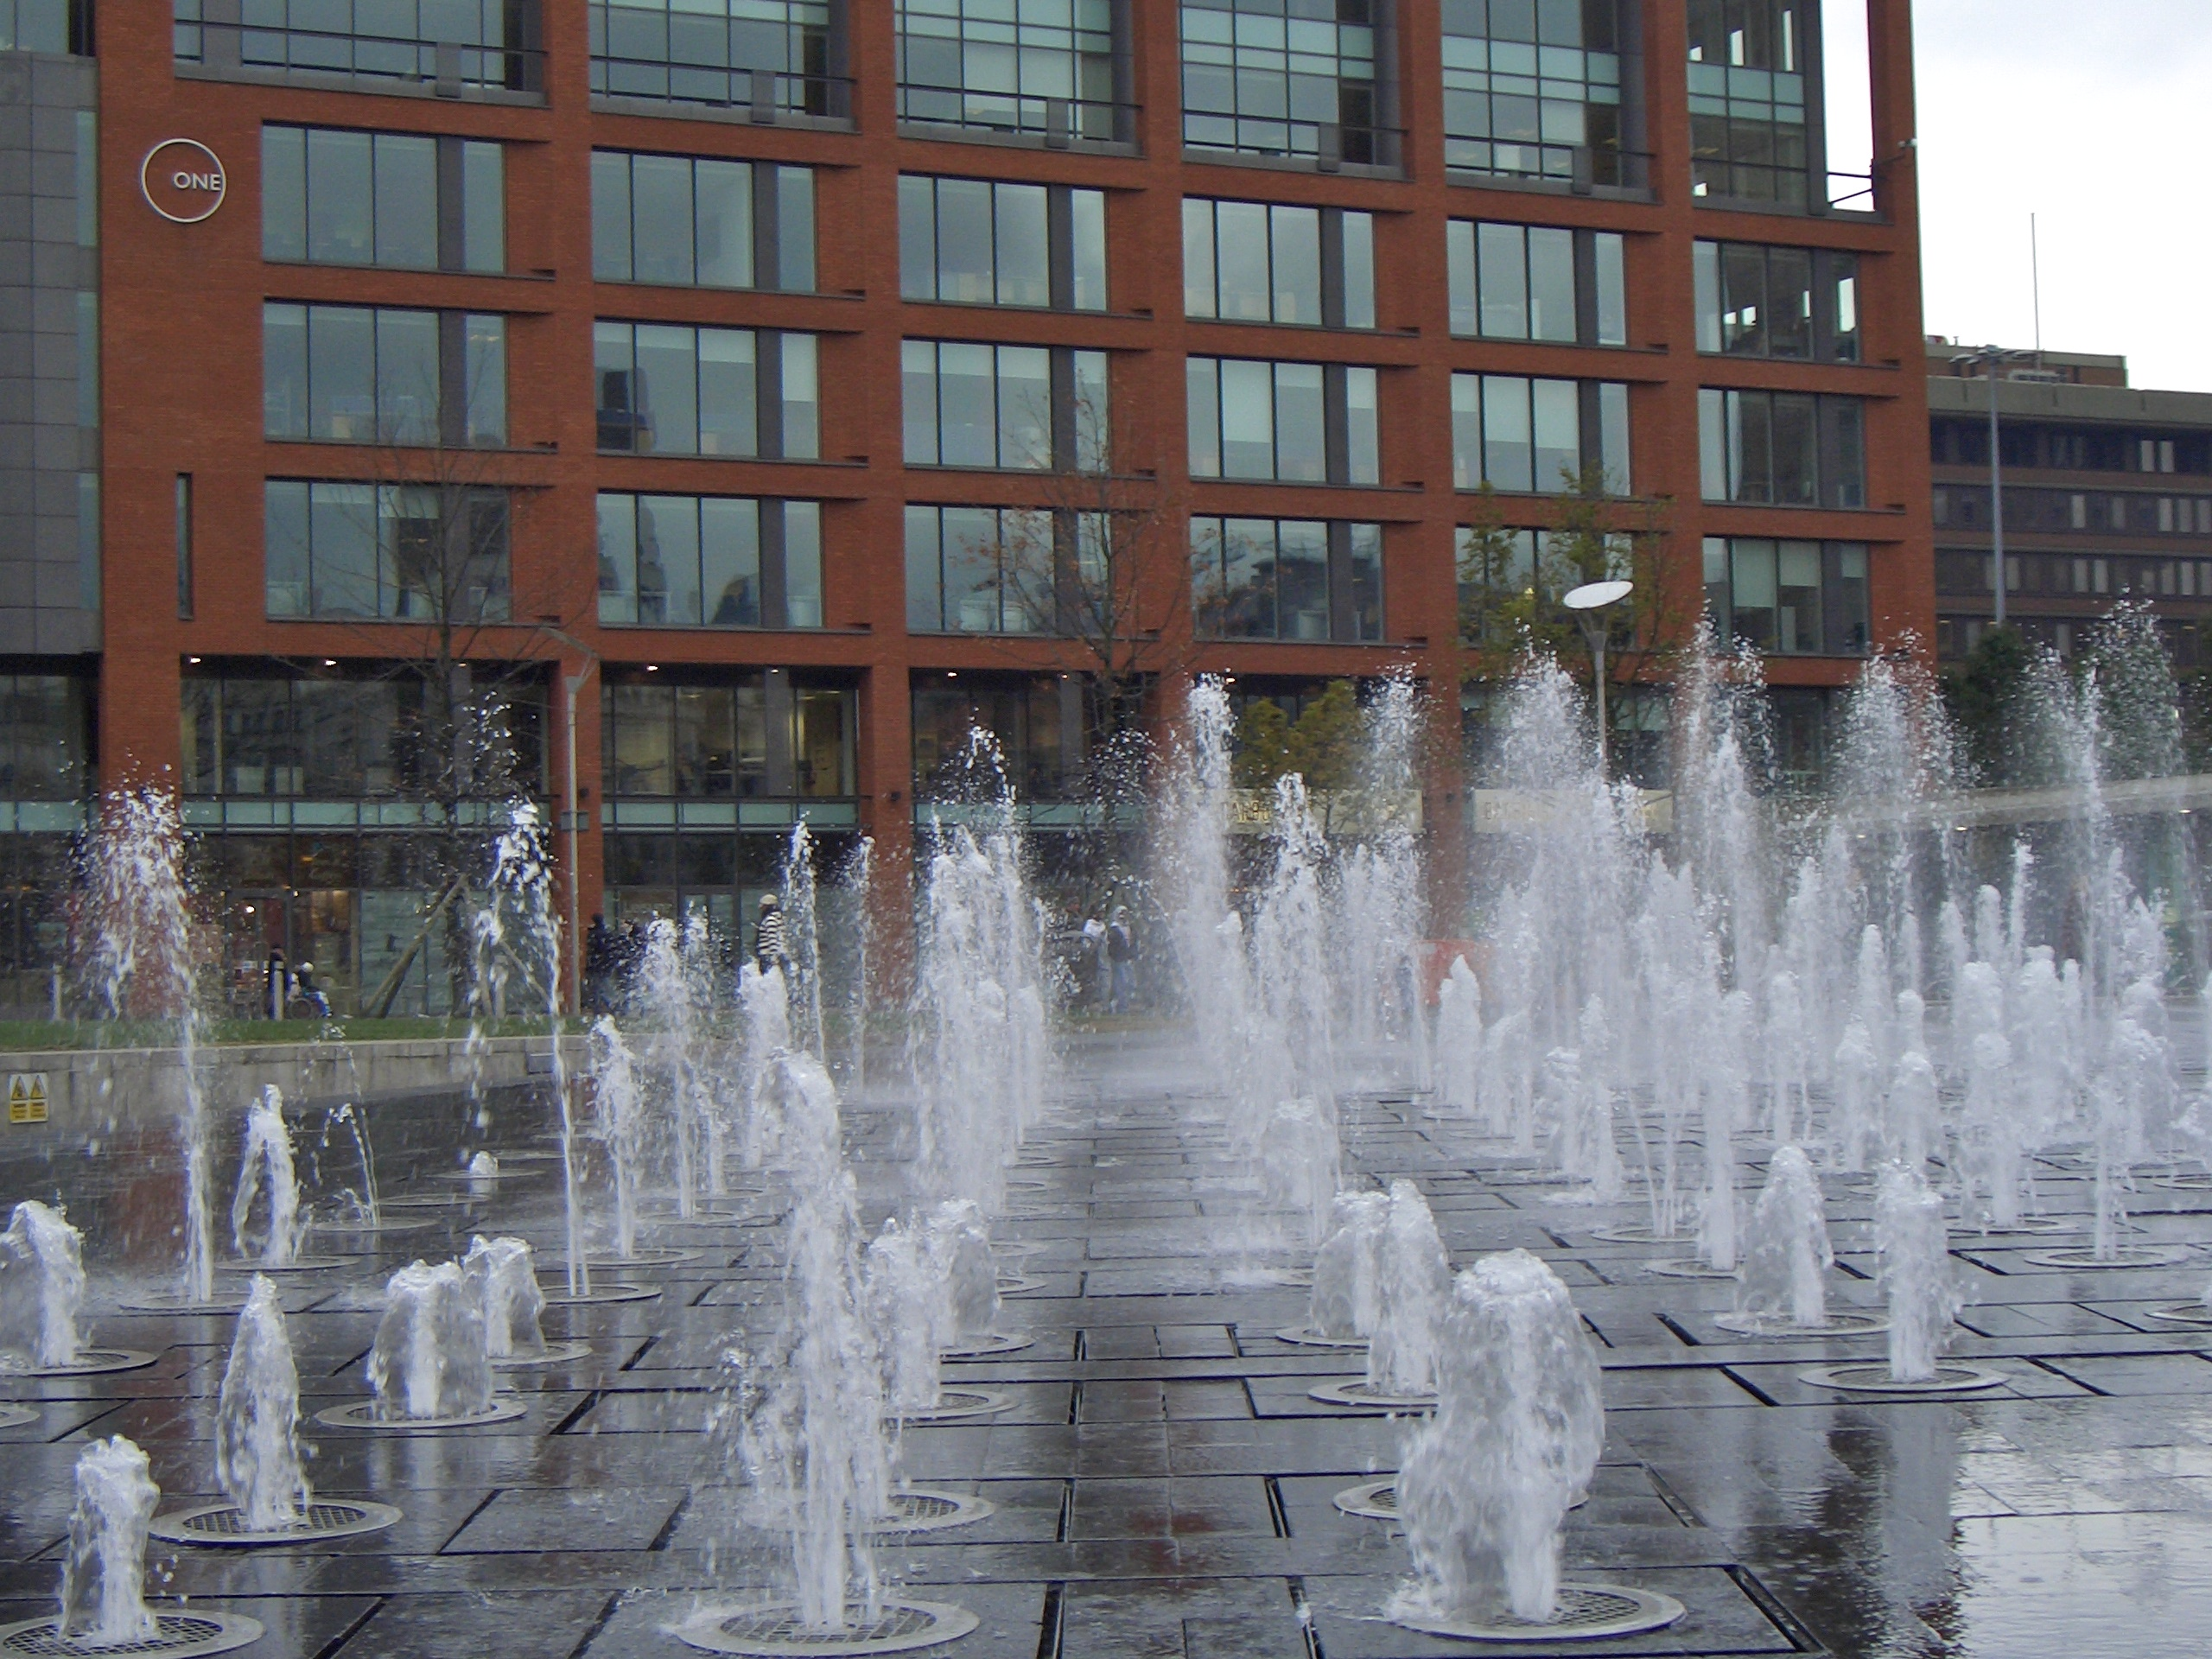 File:Fountains in Picc...